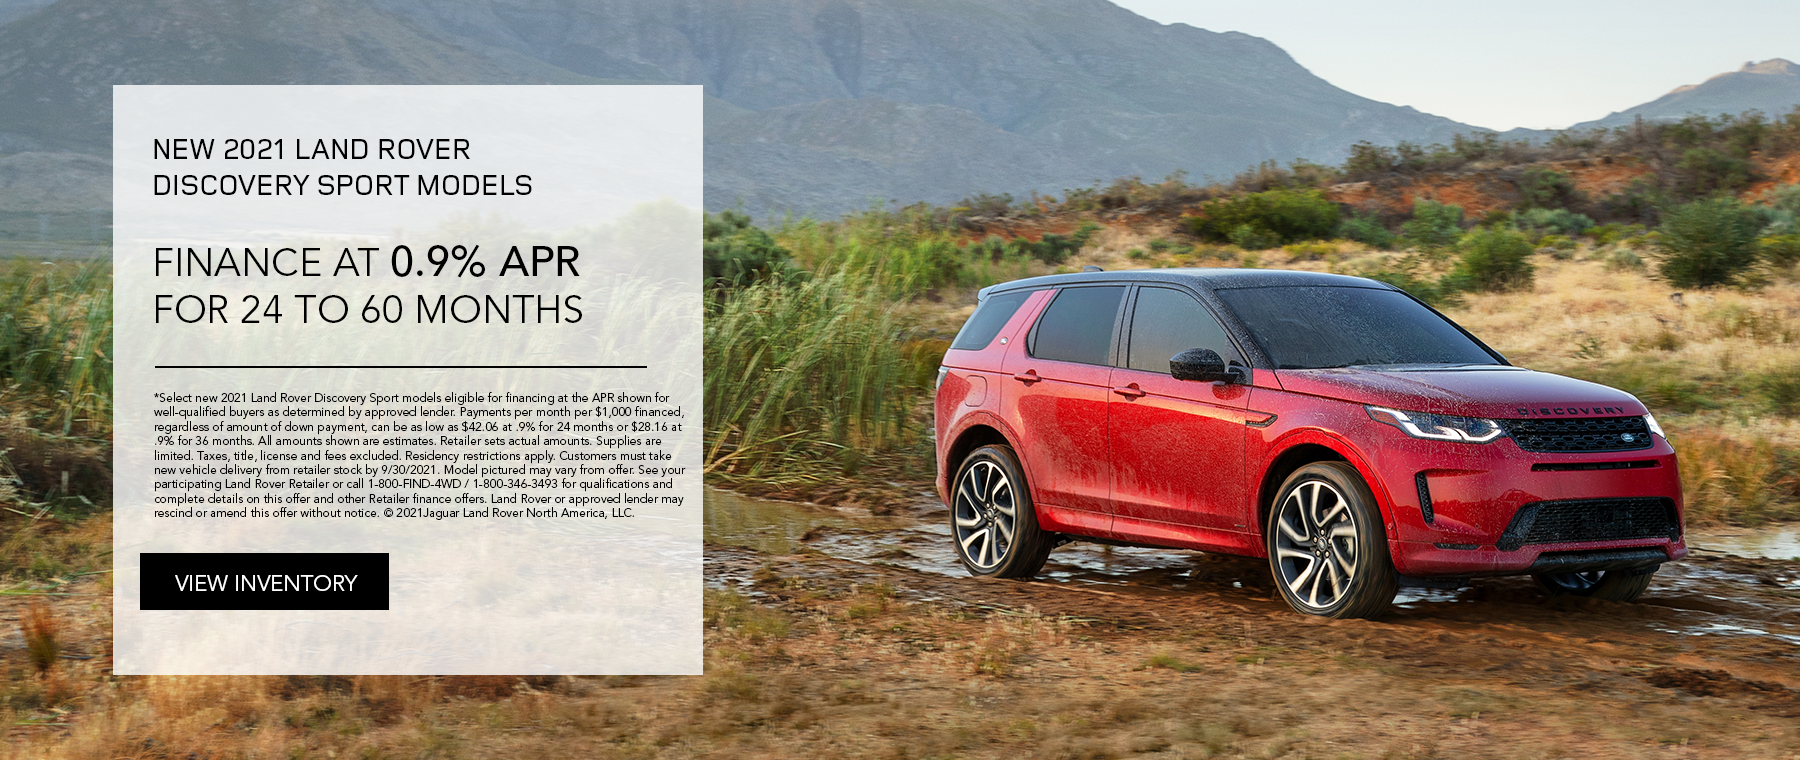 SELECT NEW 2021 LAND ROVER DISCOVERY SPORT MODELS. FINANCE AT 0.9% APR FOR 24 TO 36 MONTHS. EXCLUDES TAXES, TITLE, LICENSE AND FEES. OFFER ENDS 9/30/2021.